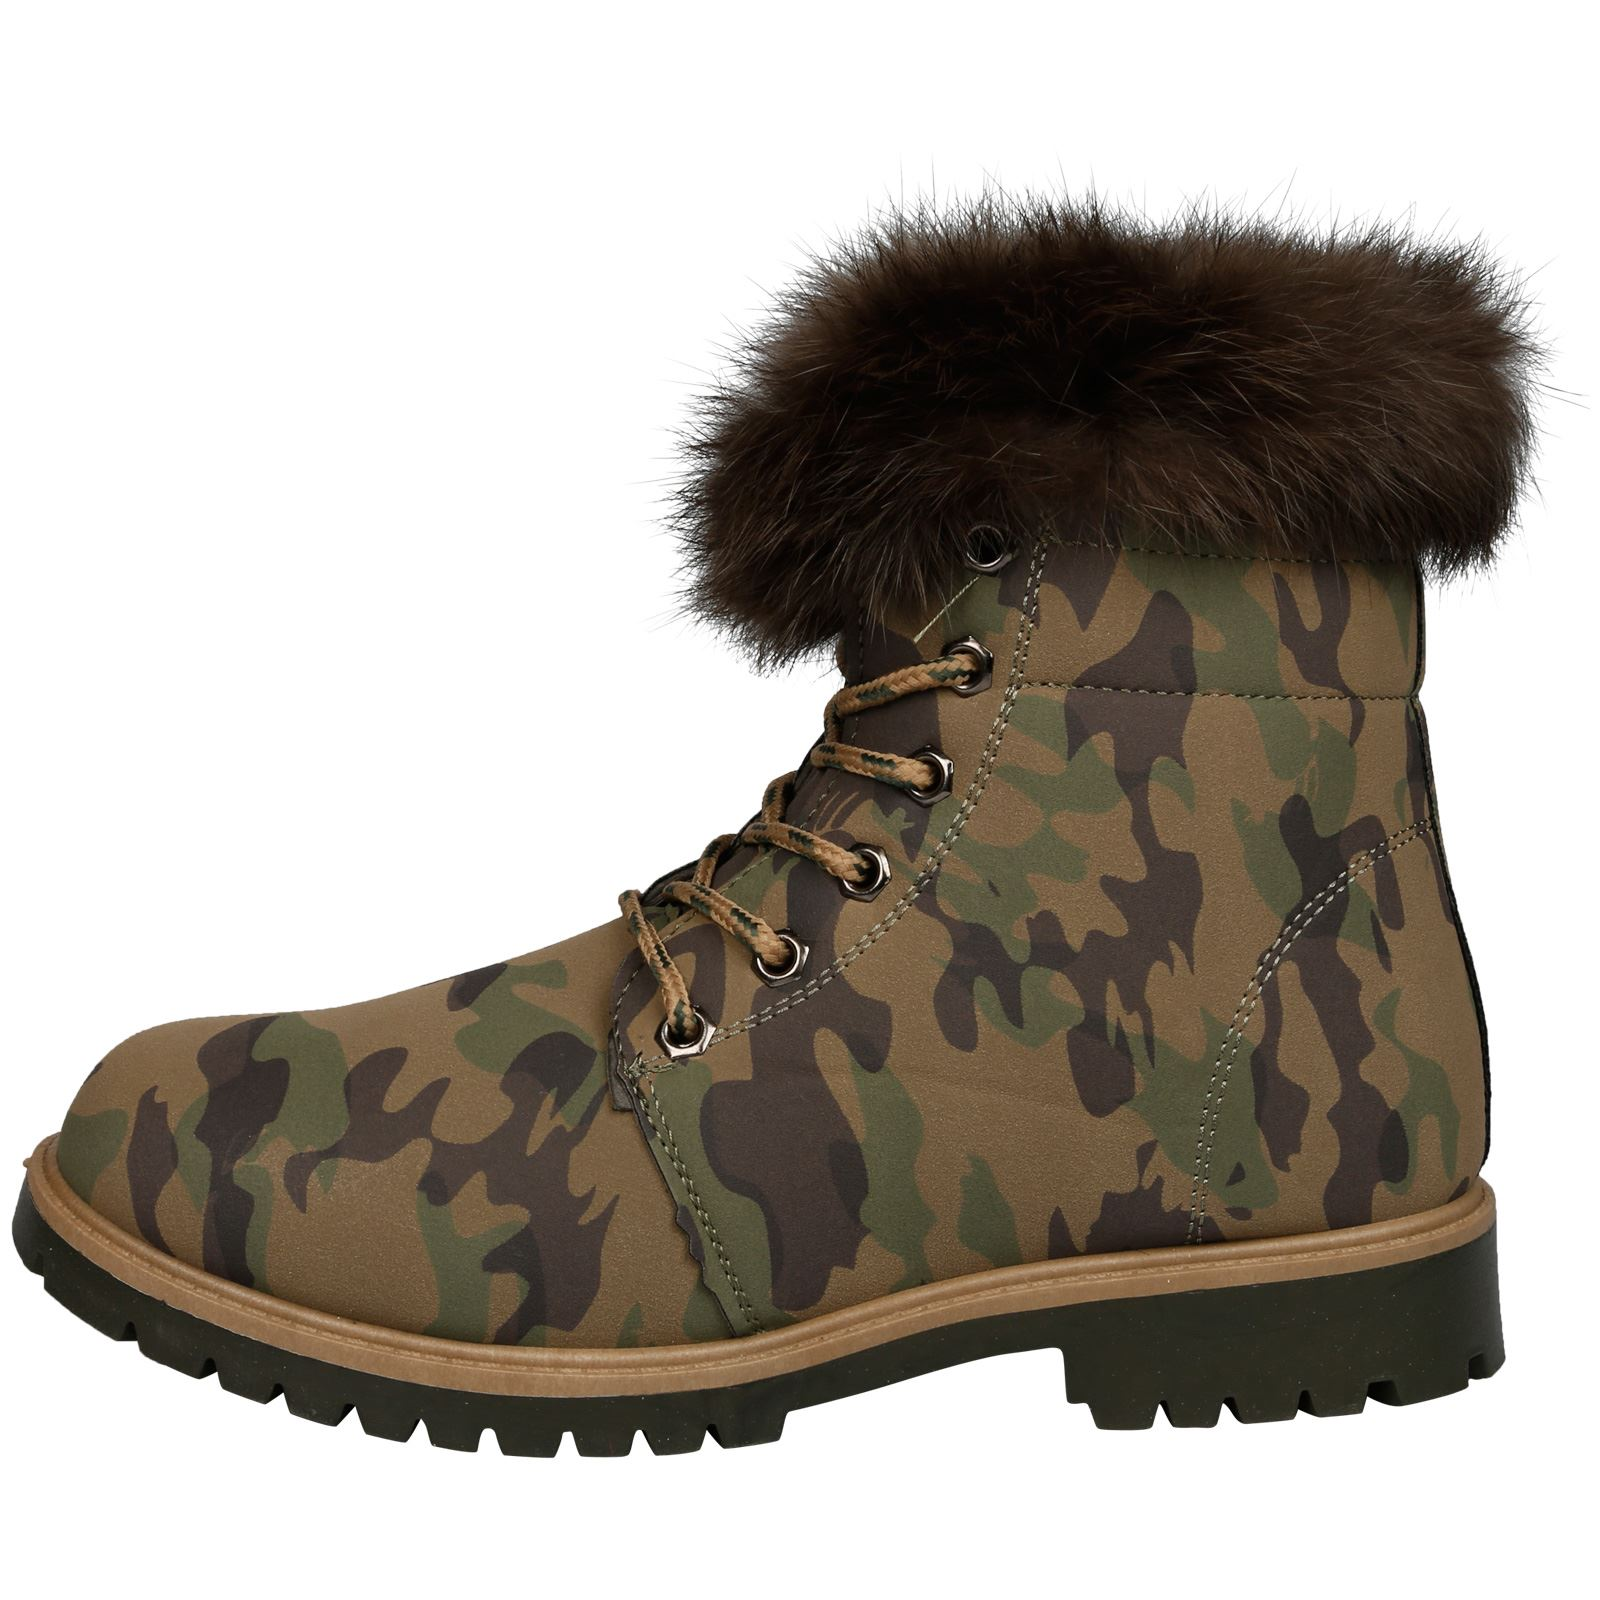 NEW-WOMEN-SHOES-LADIES-FUR-LINED-LOW-HEEL-LACE-UP-ANKLE-BOOTS-CASUAL-STYLE-SIZE thumbnail 4